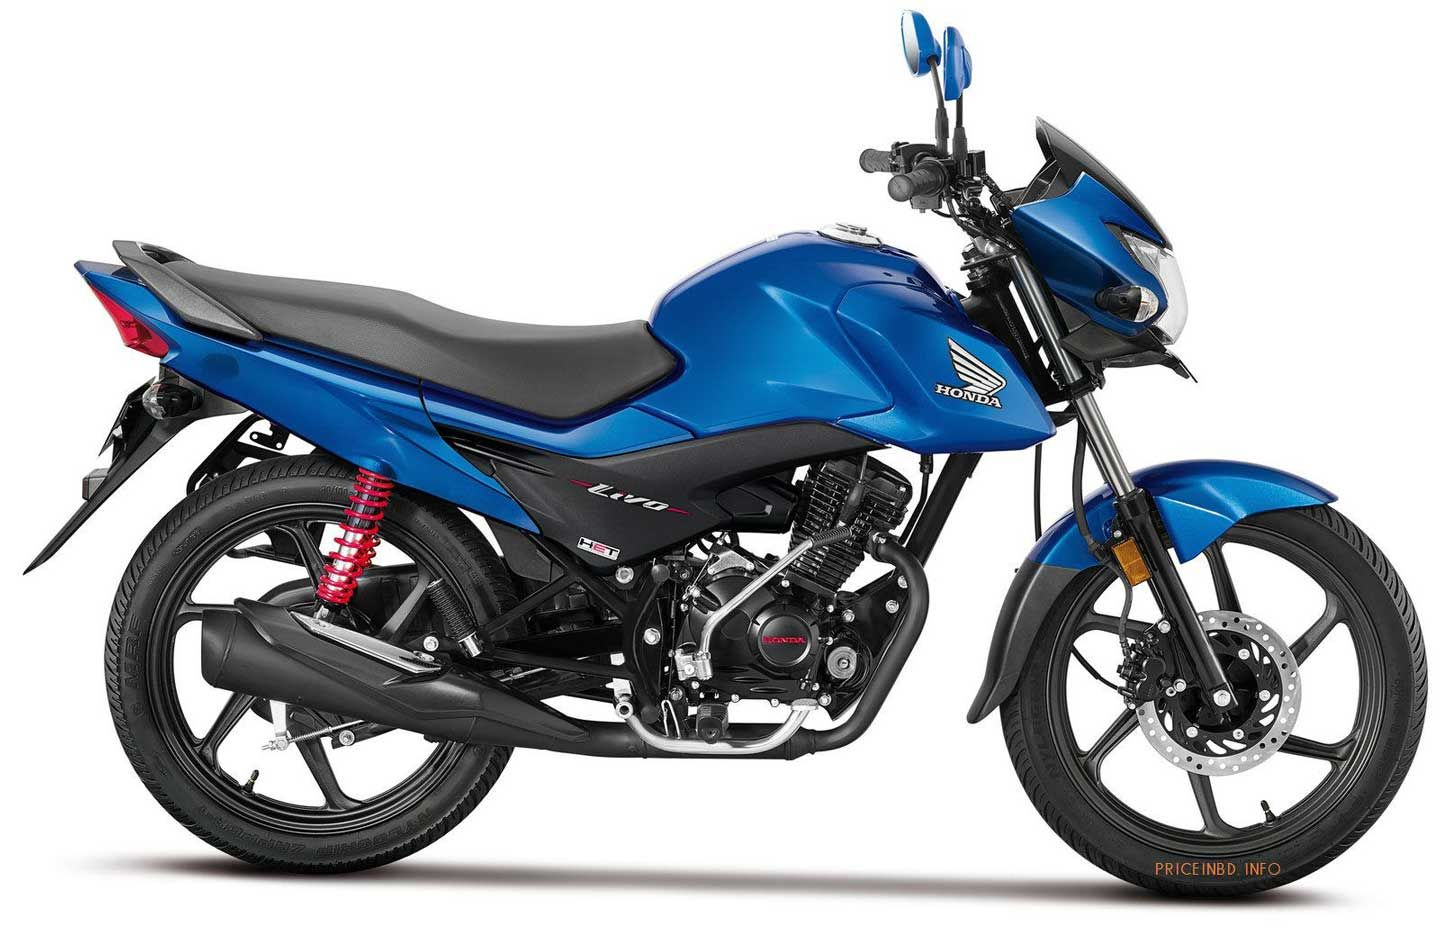 Bajaj discover 125t price in india this bajaj discover 125t bike has launched and ready to sell into the indian motor market